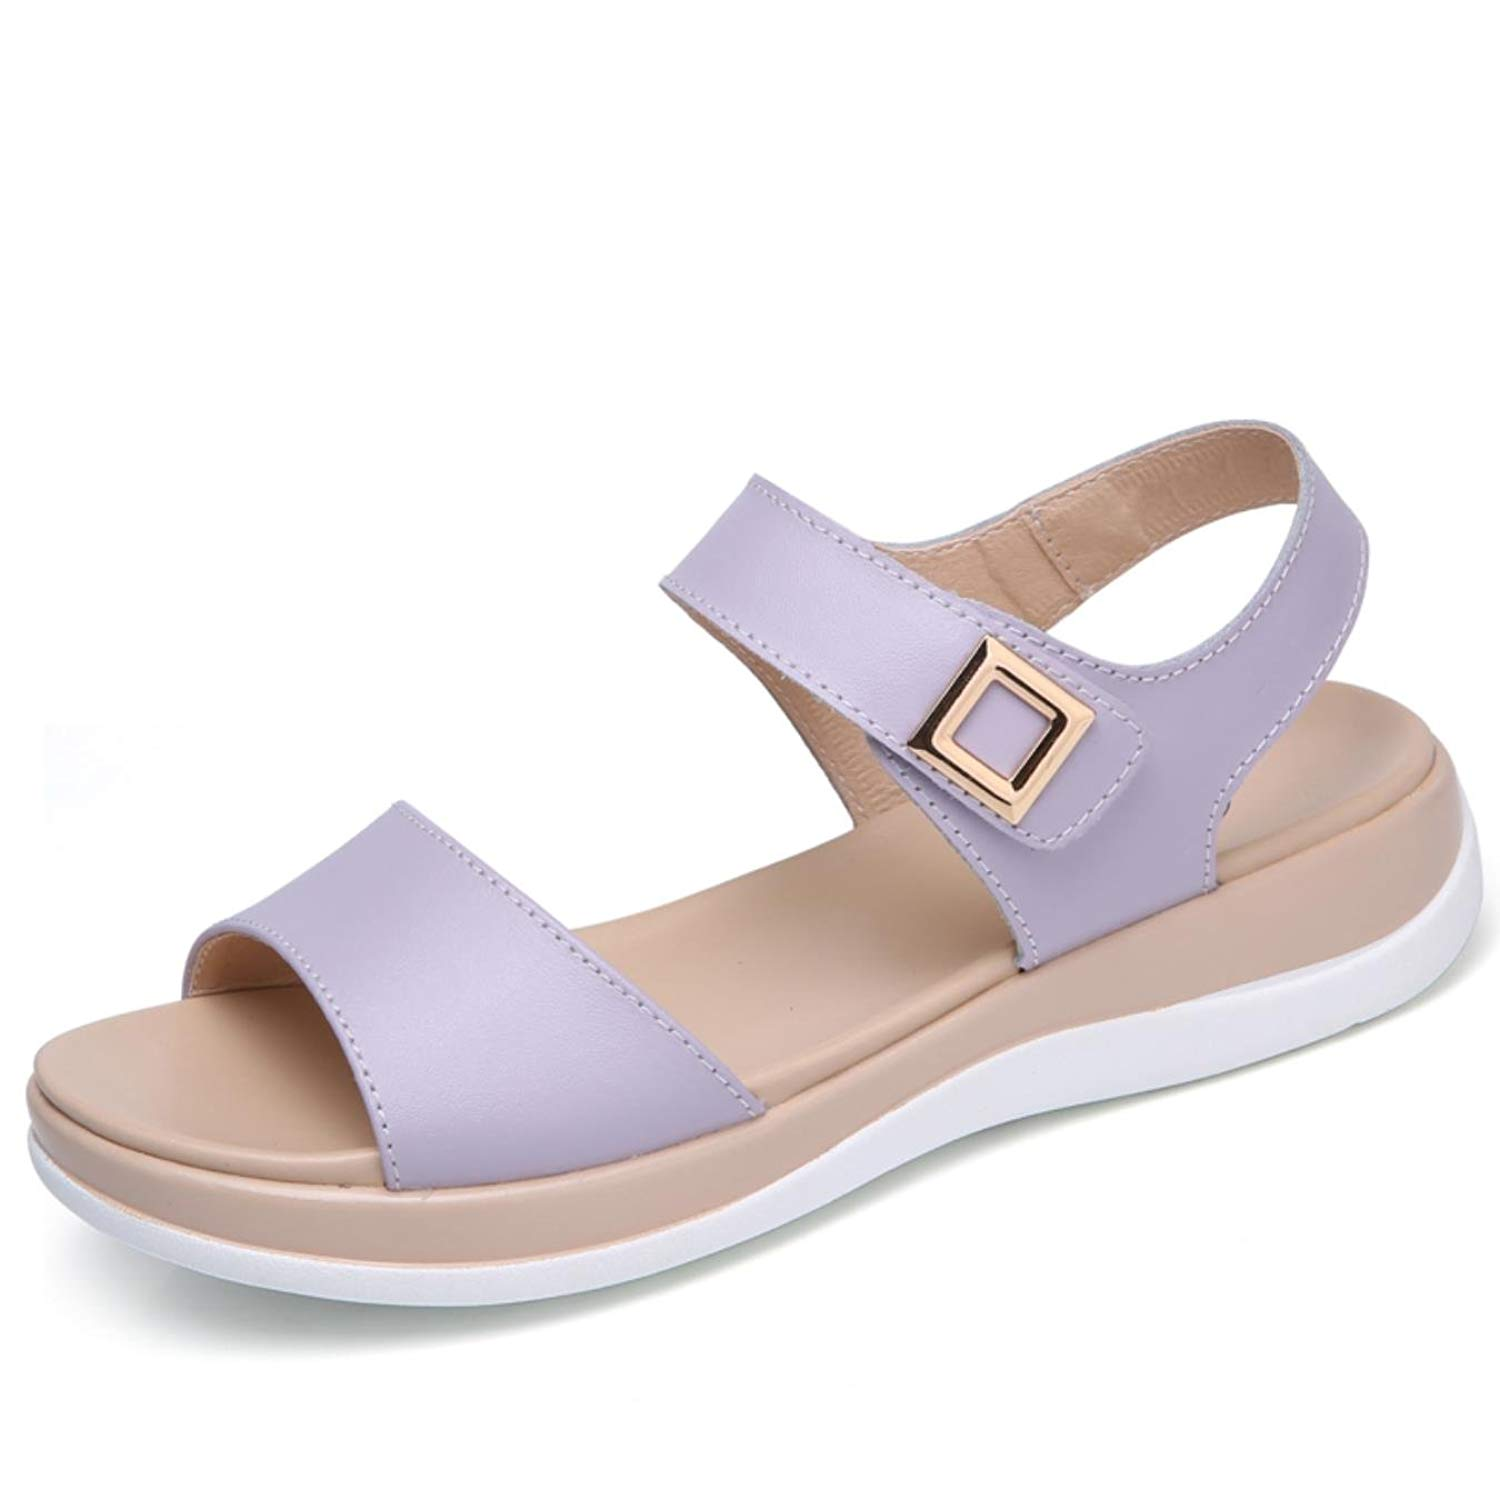 098abf387862 Get Quotations · Women sandals shoes concise genunie leather soft  comfortable flat sandals ladies orchid casual sandals